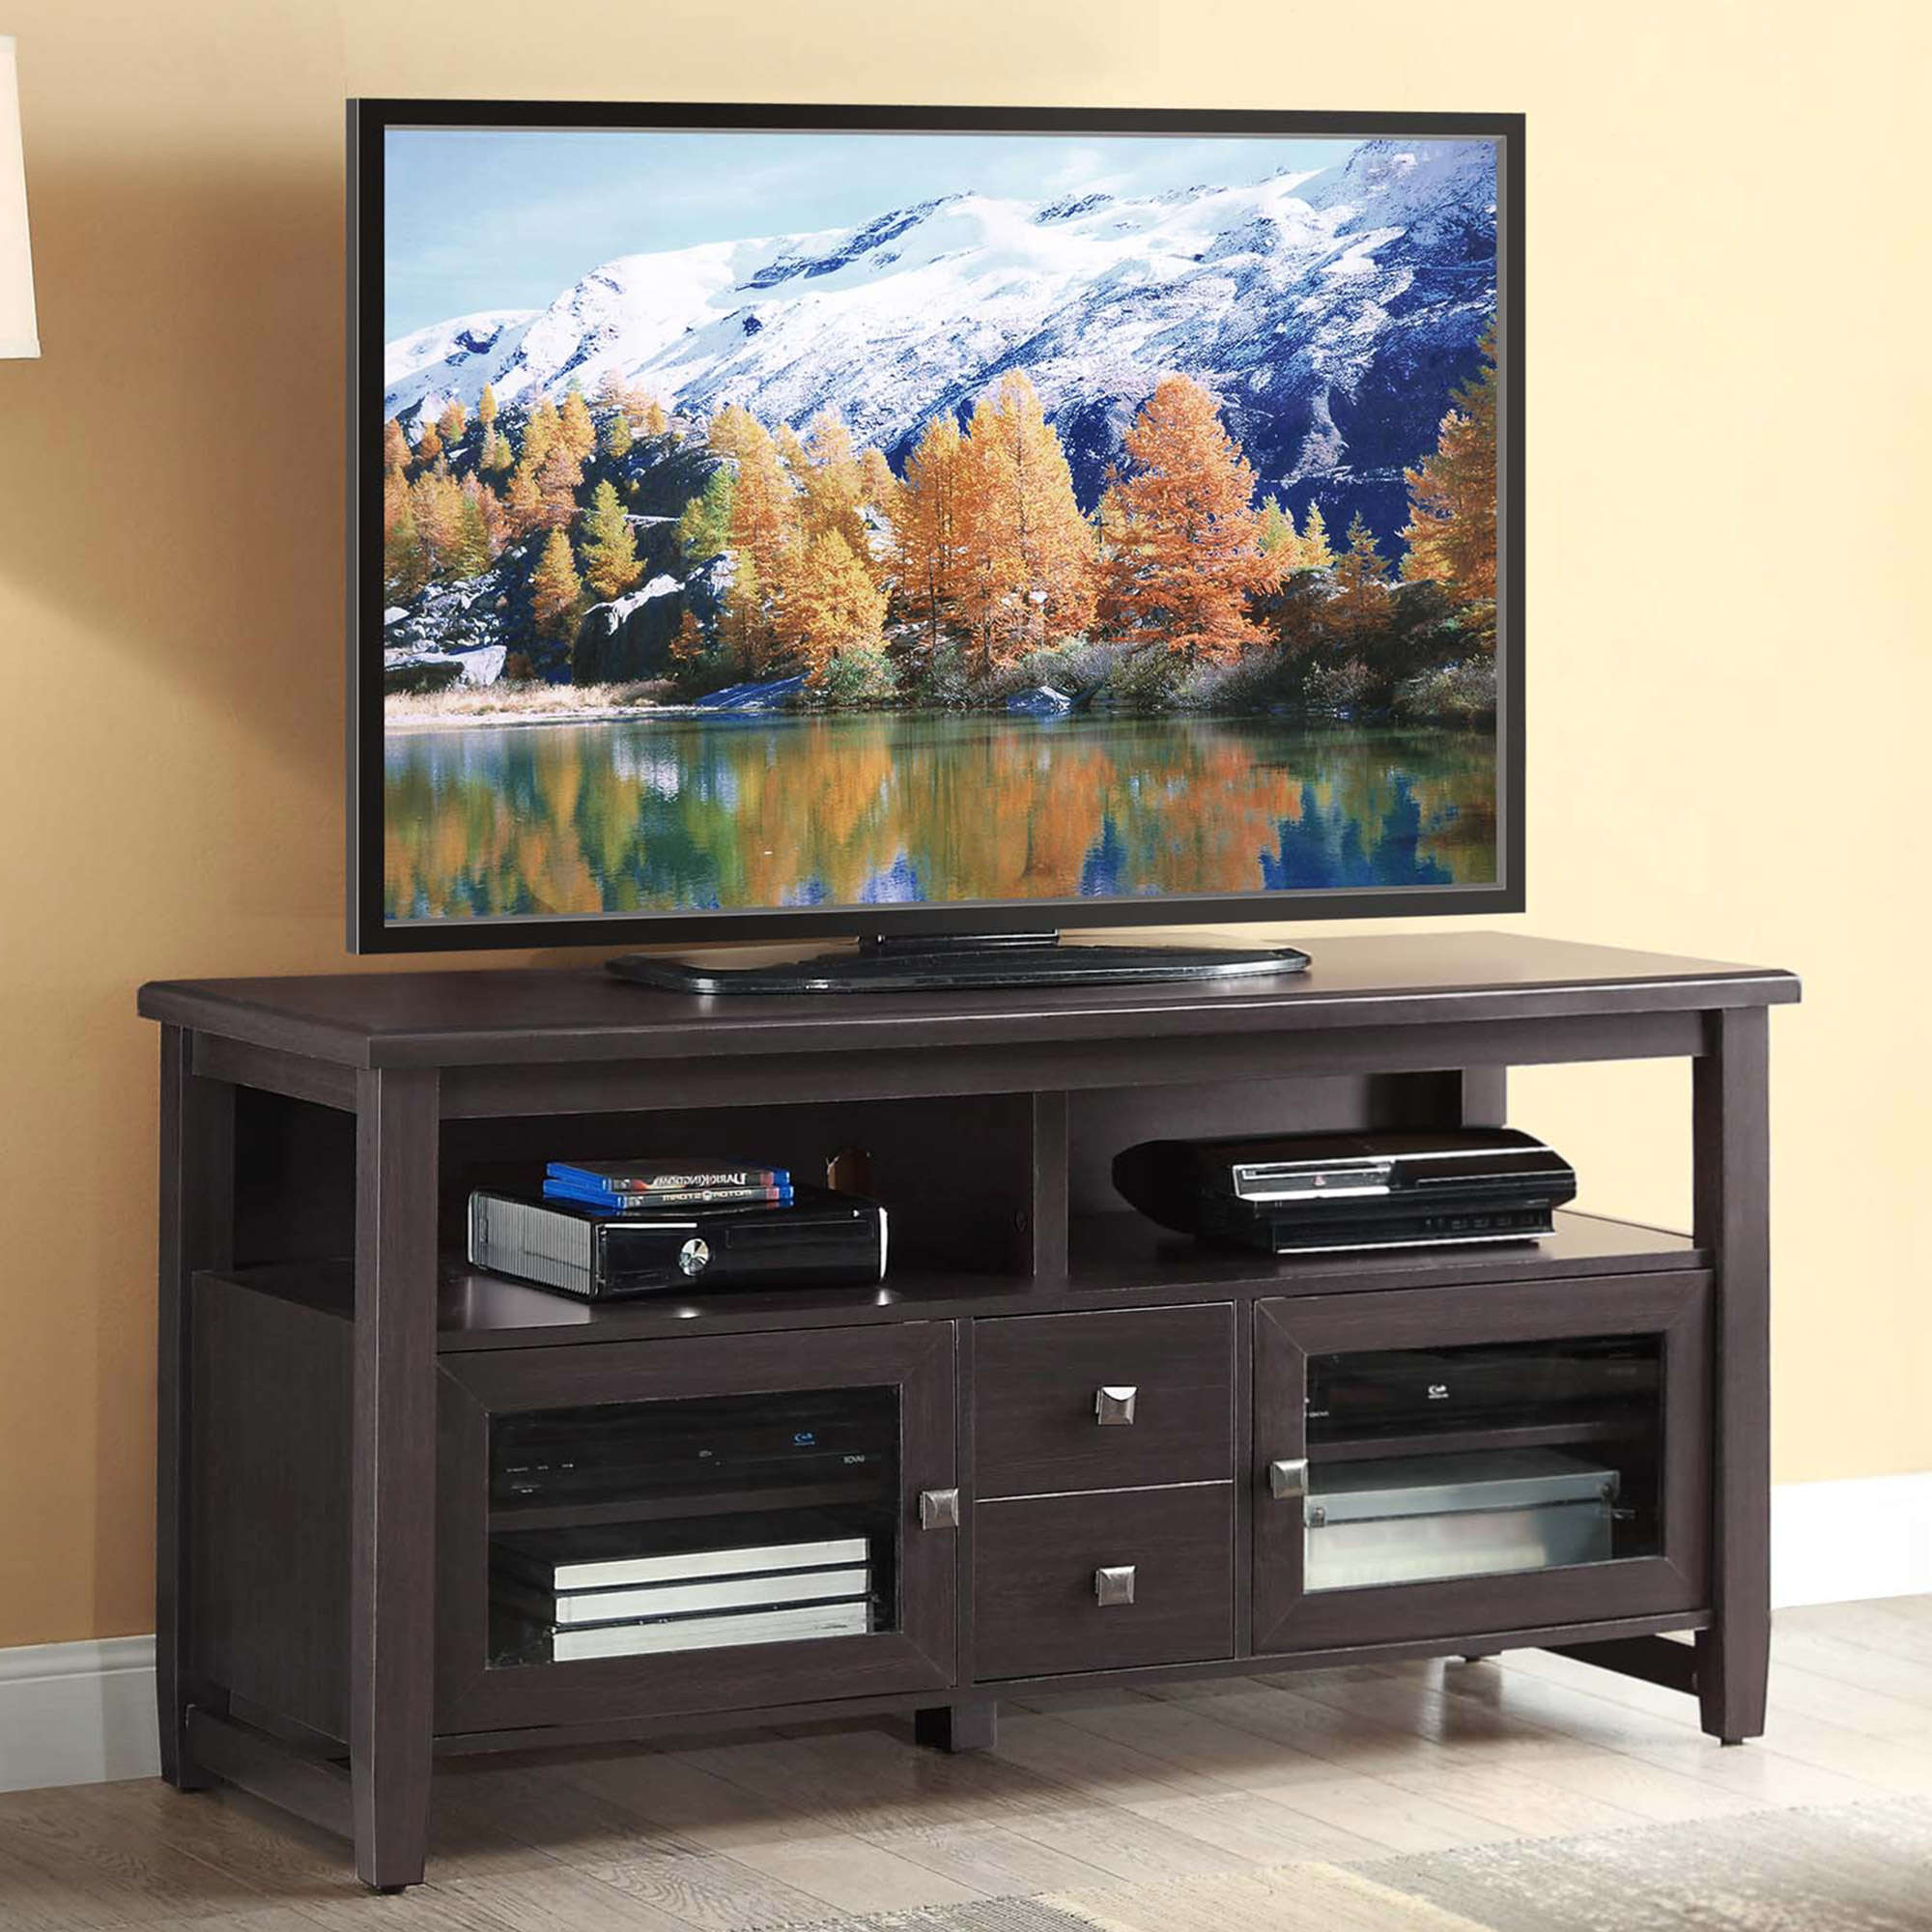 """Whalen 54"""" Tv Stand For Tvs Up To 60"""", Espresso Finish Within 2019 Miah Tv Stands For Tvs Up To 60"""" (View 11 of 20)"""